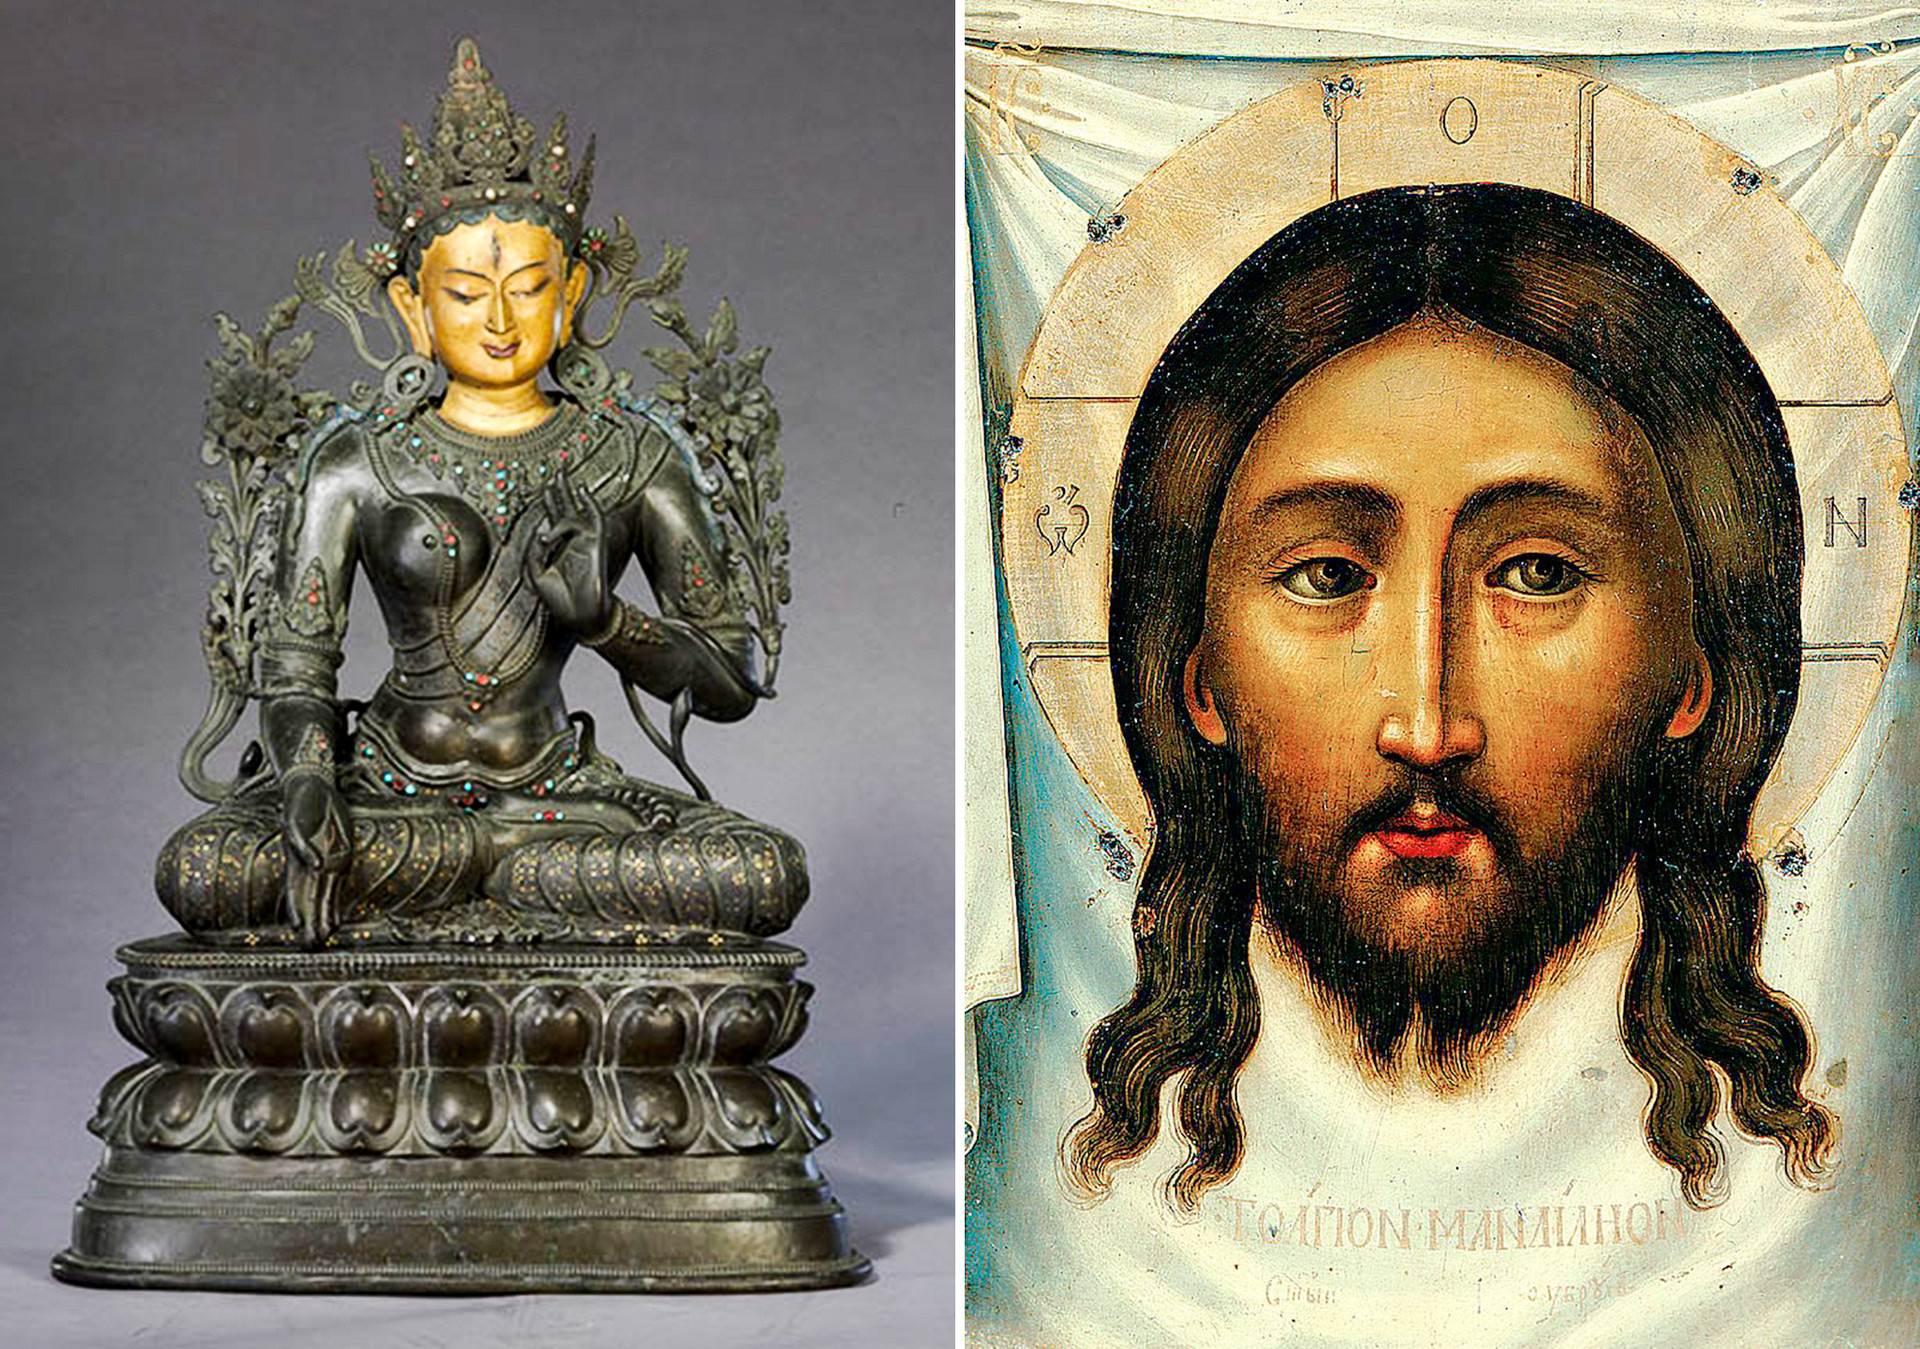 Left: White Tara statue, the Qianlong period. 